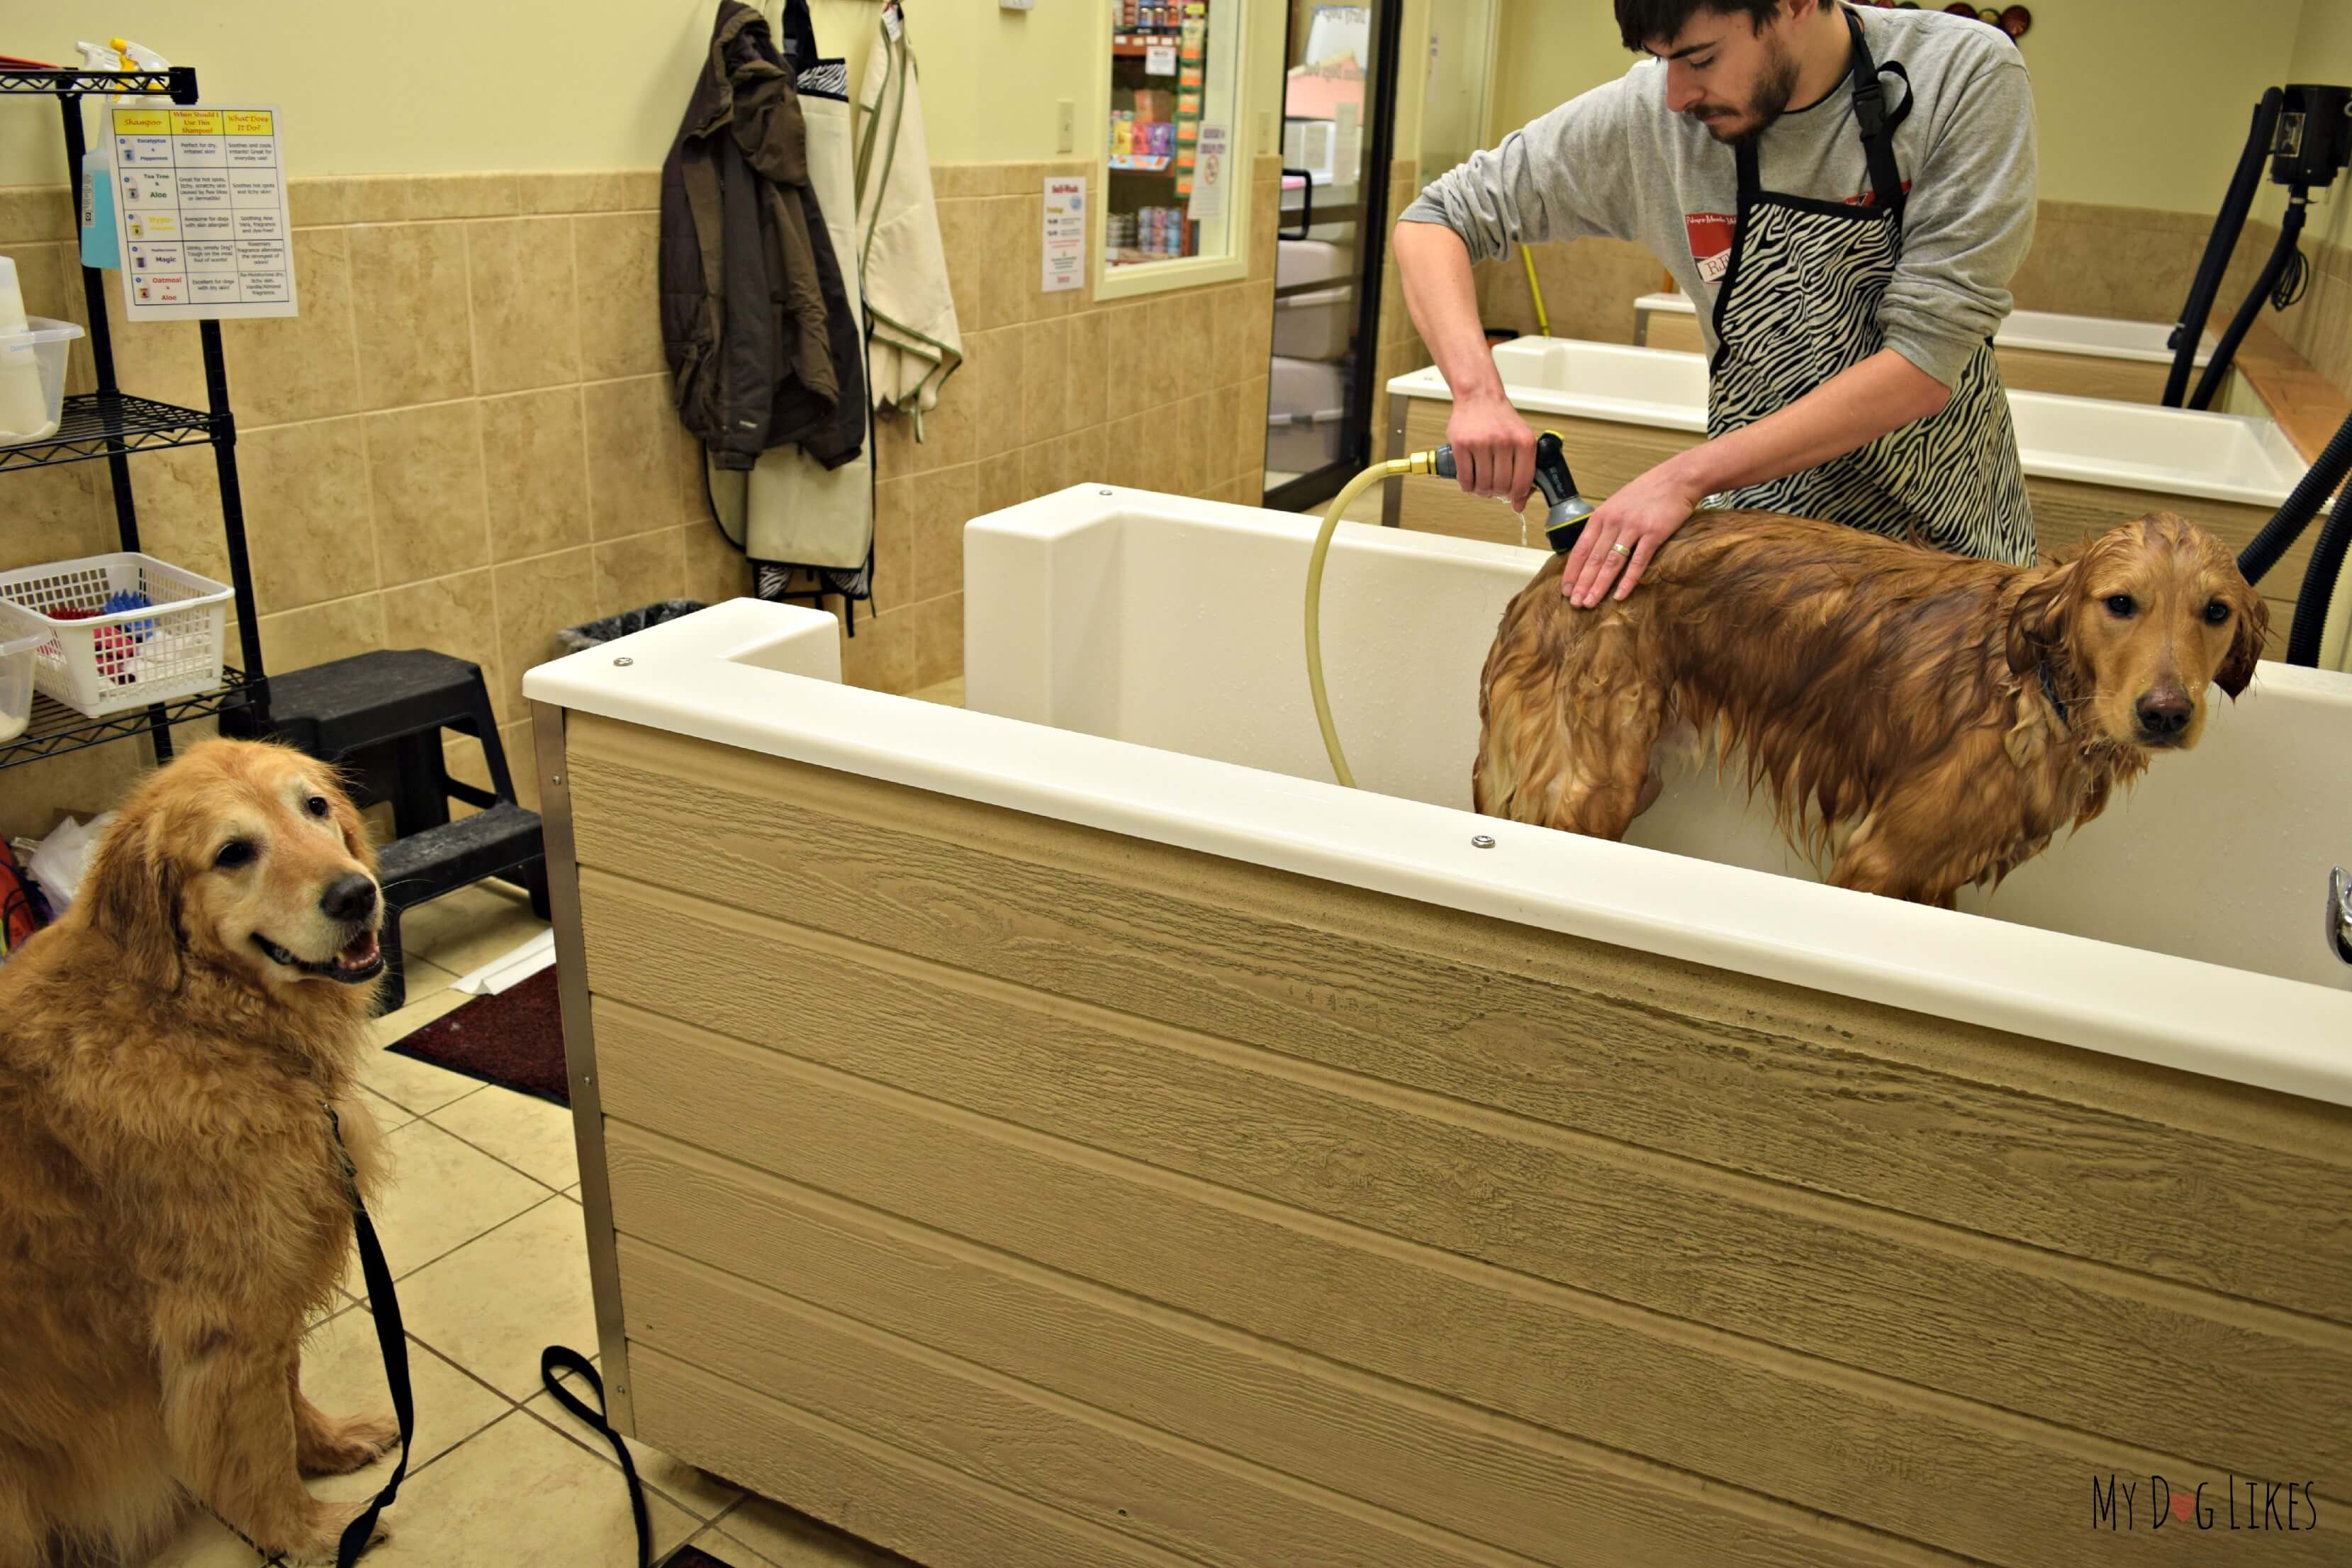 Self wash petsaver healthy pet superstore giving the boys a bath at the self service dog grooming stations at petsaver superstore solutioingenieria Image collections